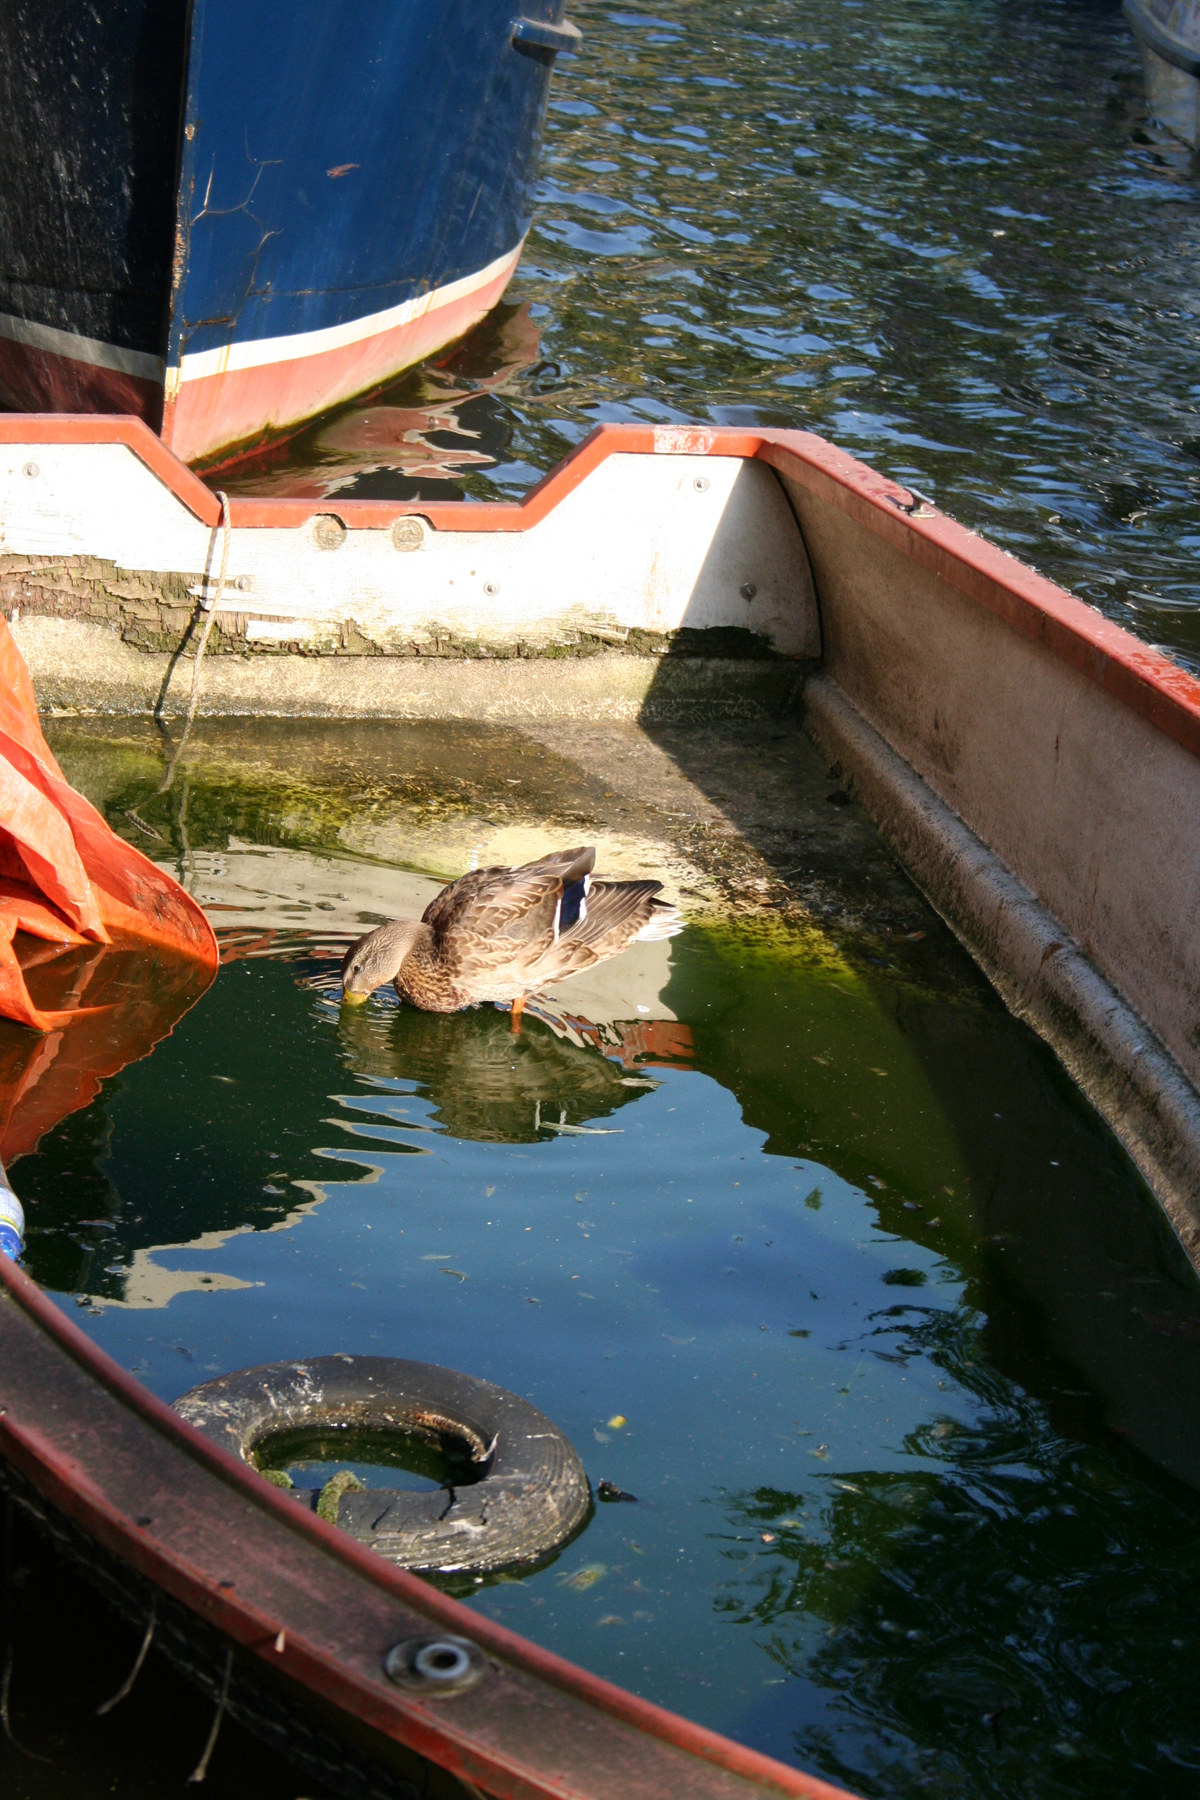 Duck in a boat photo